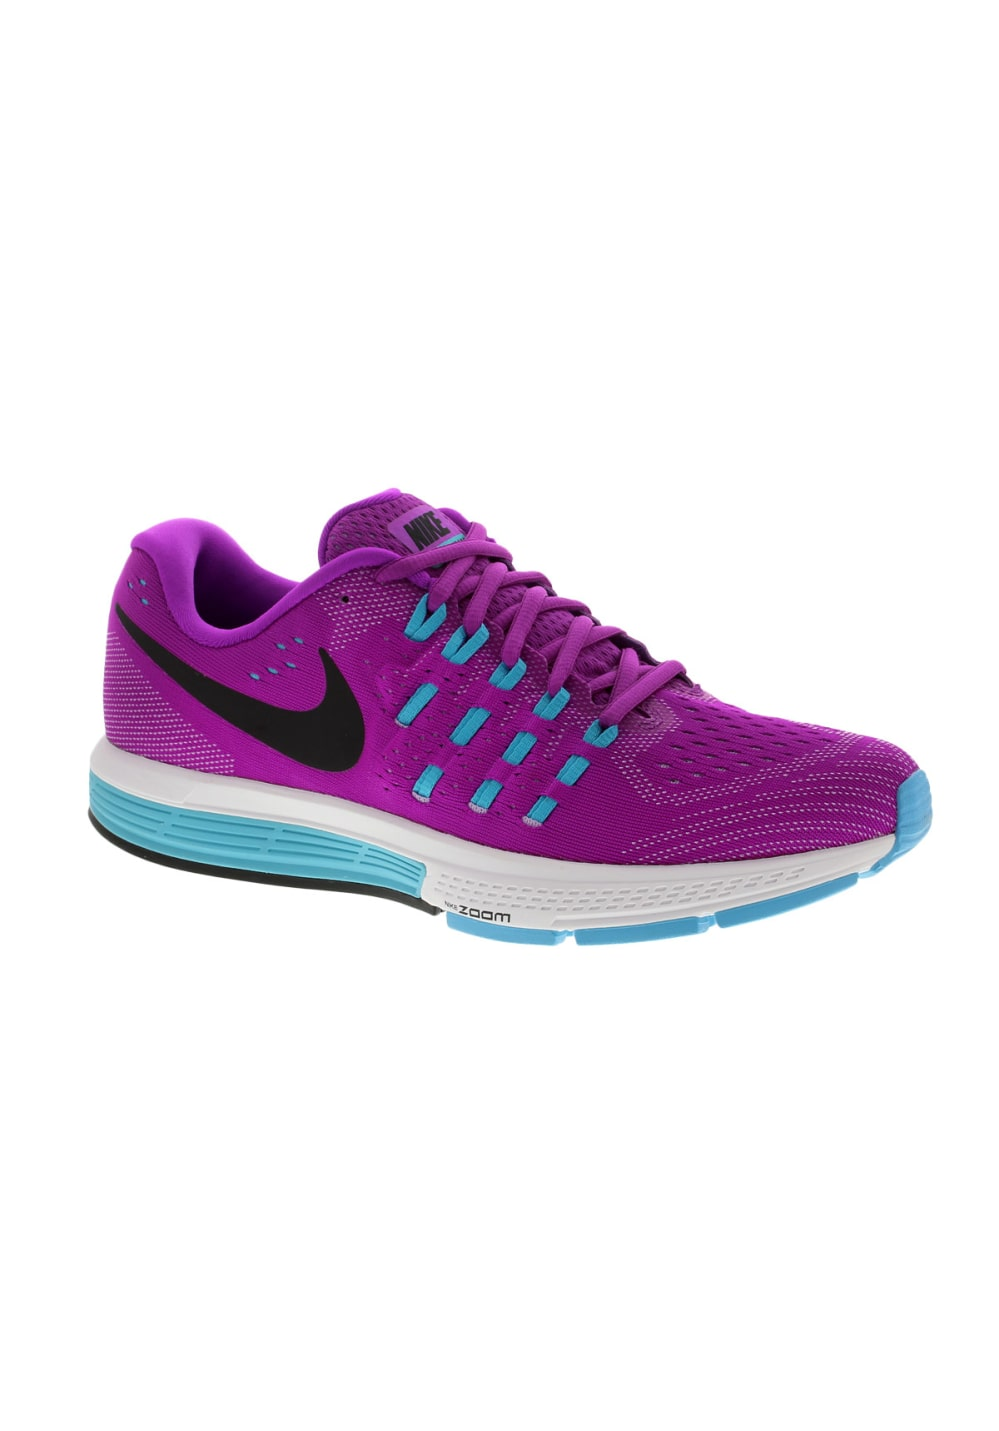 6a64778f224 Next. -60%. Nike. Air Zoom Vomero 11 - Running shoes for Women